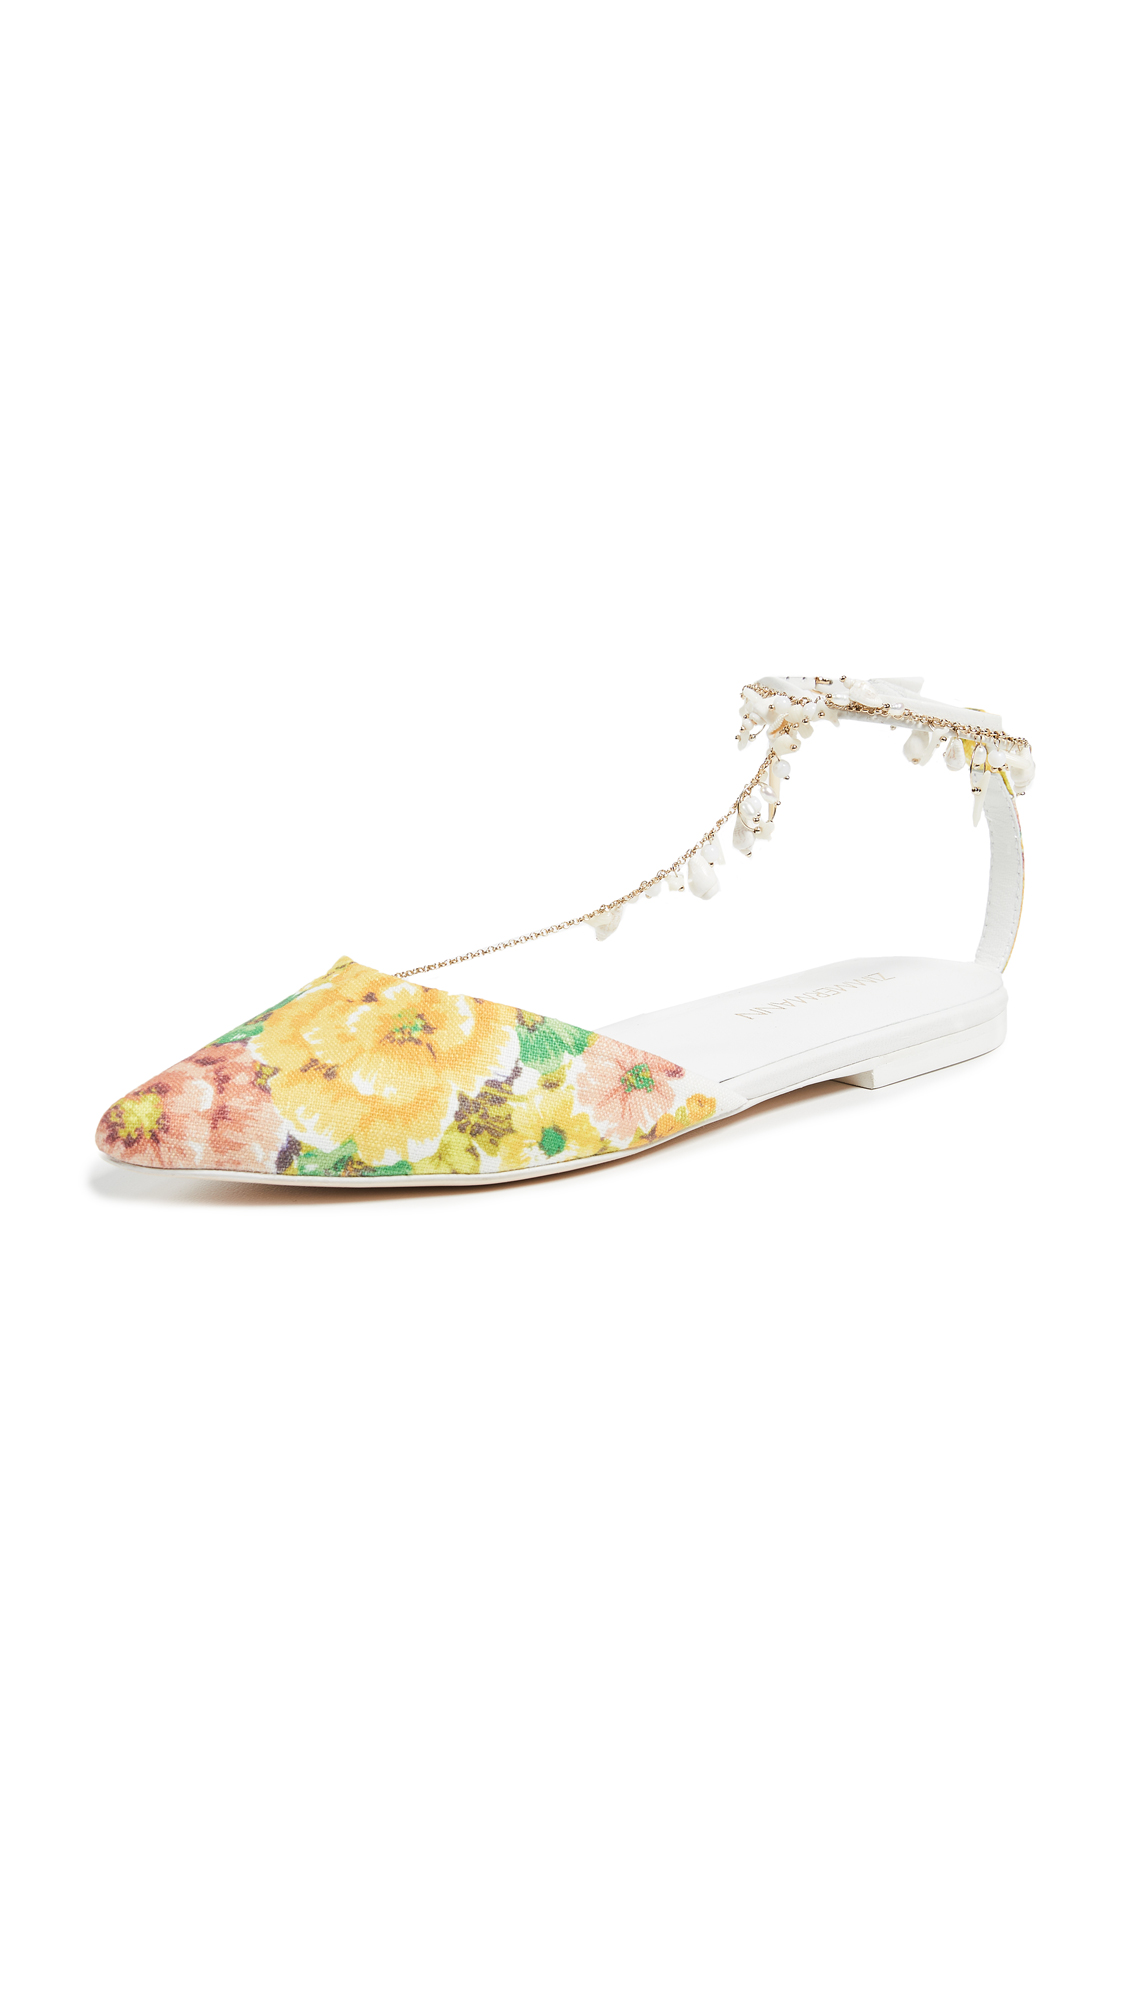 Zimmermann Goldentime Pointed Flats - Citrus Stamp